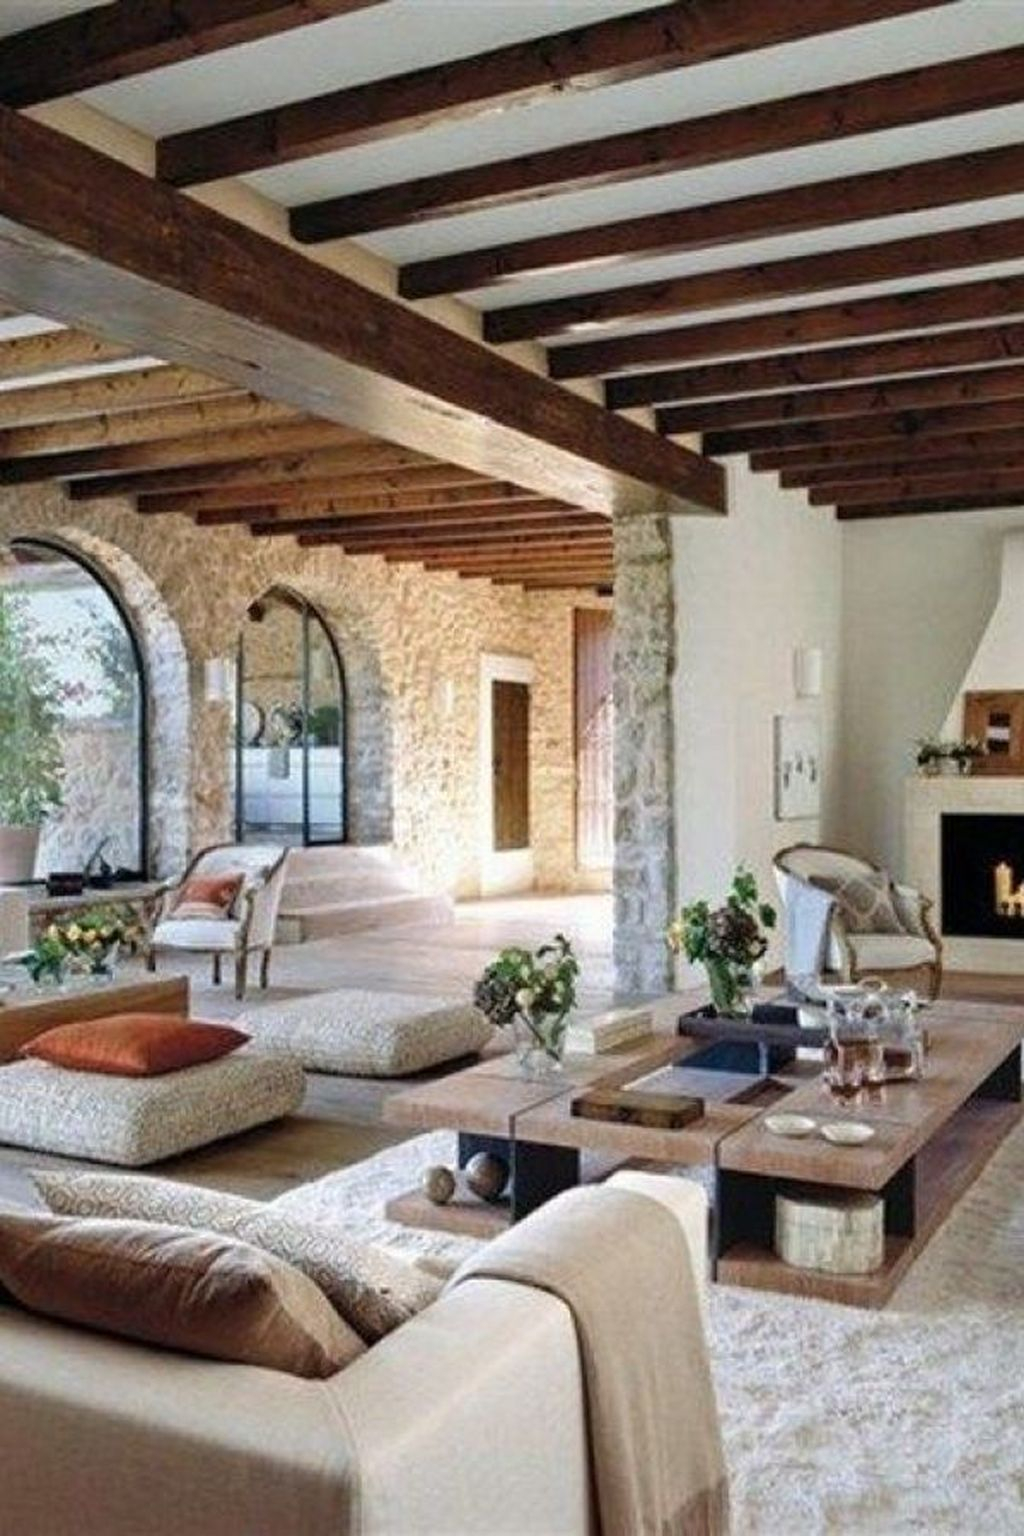 Relaxing Mediterranean Living Room Design Ideas To Try Asap 23